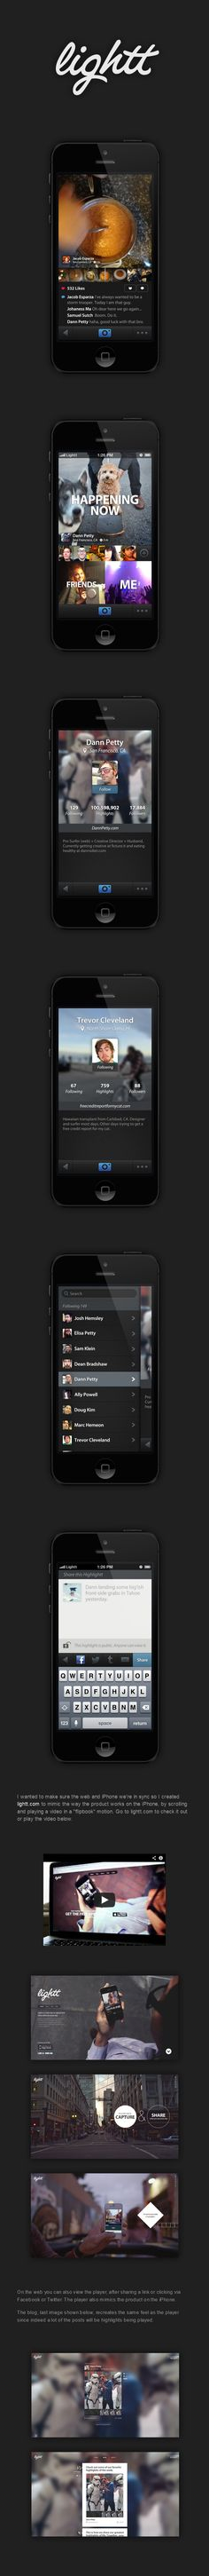 """Lightt iPhone App by Dann Petty, via Behance *** """" The creation of the Lightt. Everything from branding to iPhone 4, iPhone 5 app design as well as the entire web presence. """""""